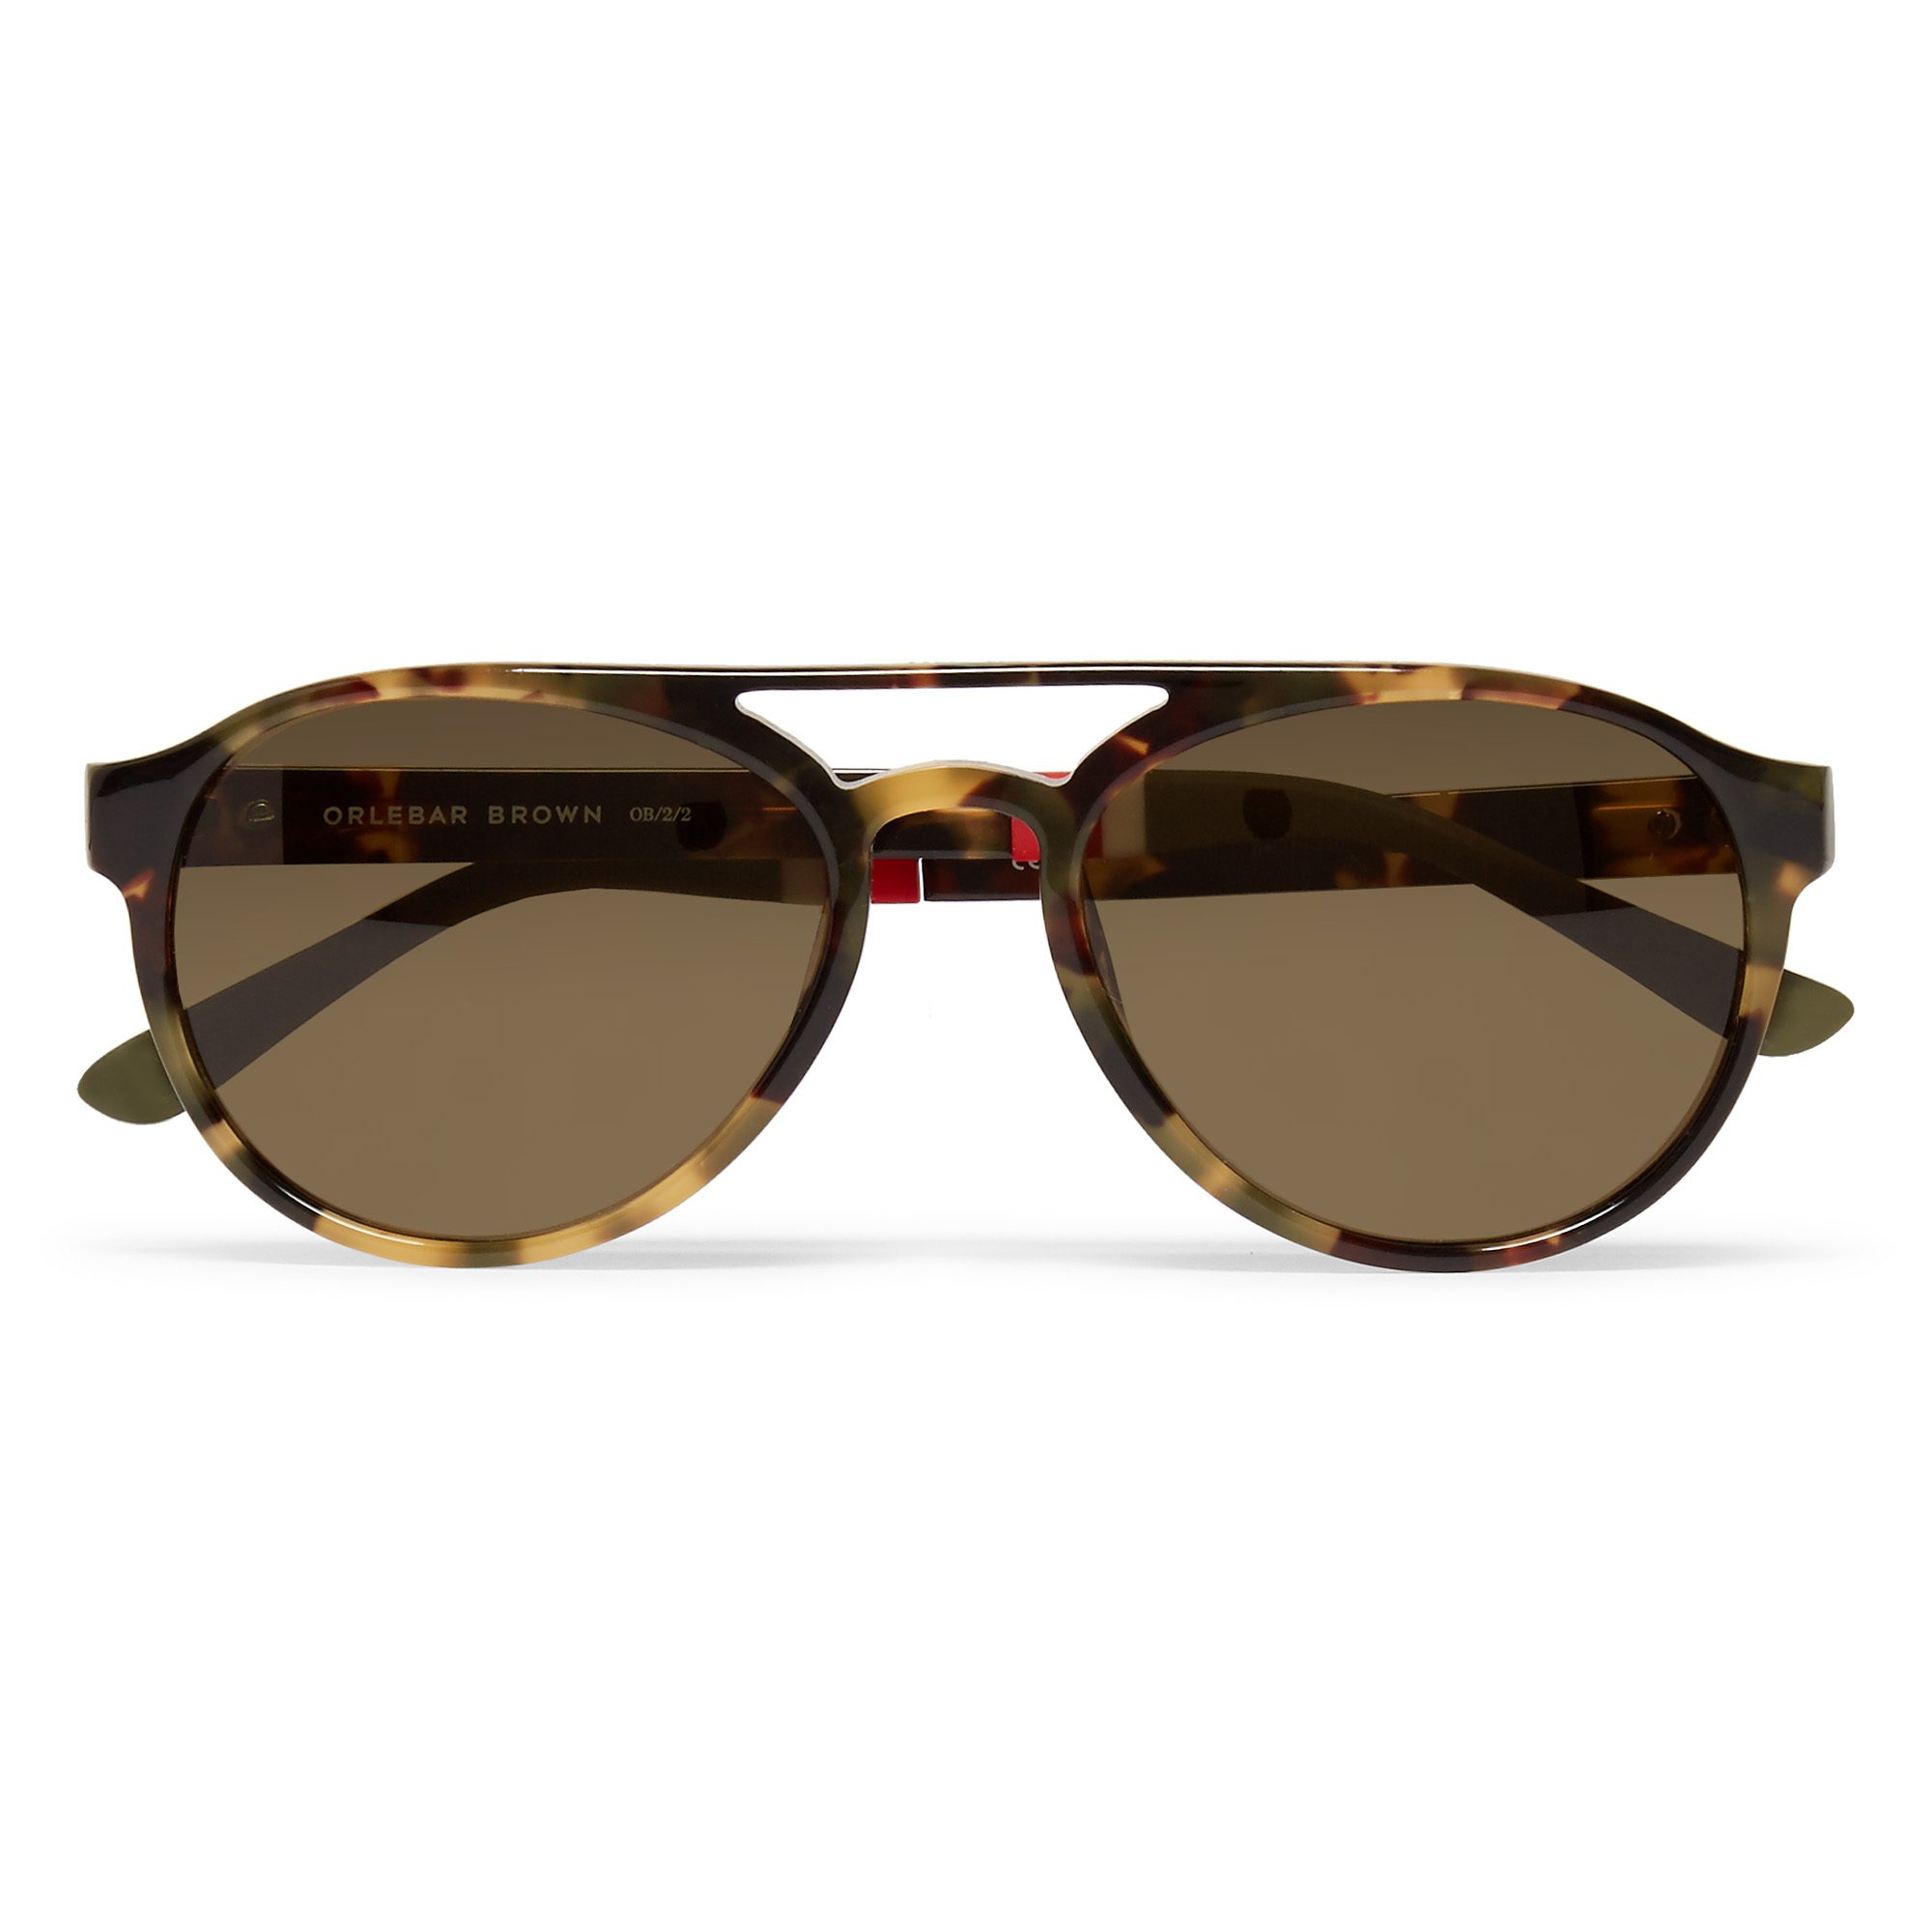 Orlebar-Brown-Spring-2016-Sunglasses_LAING_OB2C2SUN_CAMOUFLAGE_OLIVE GREEN_ARMY.jpg